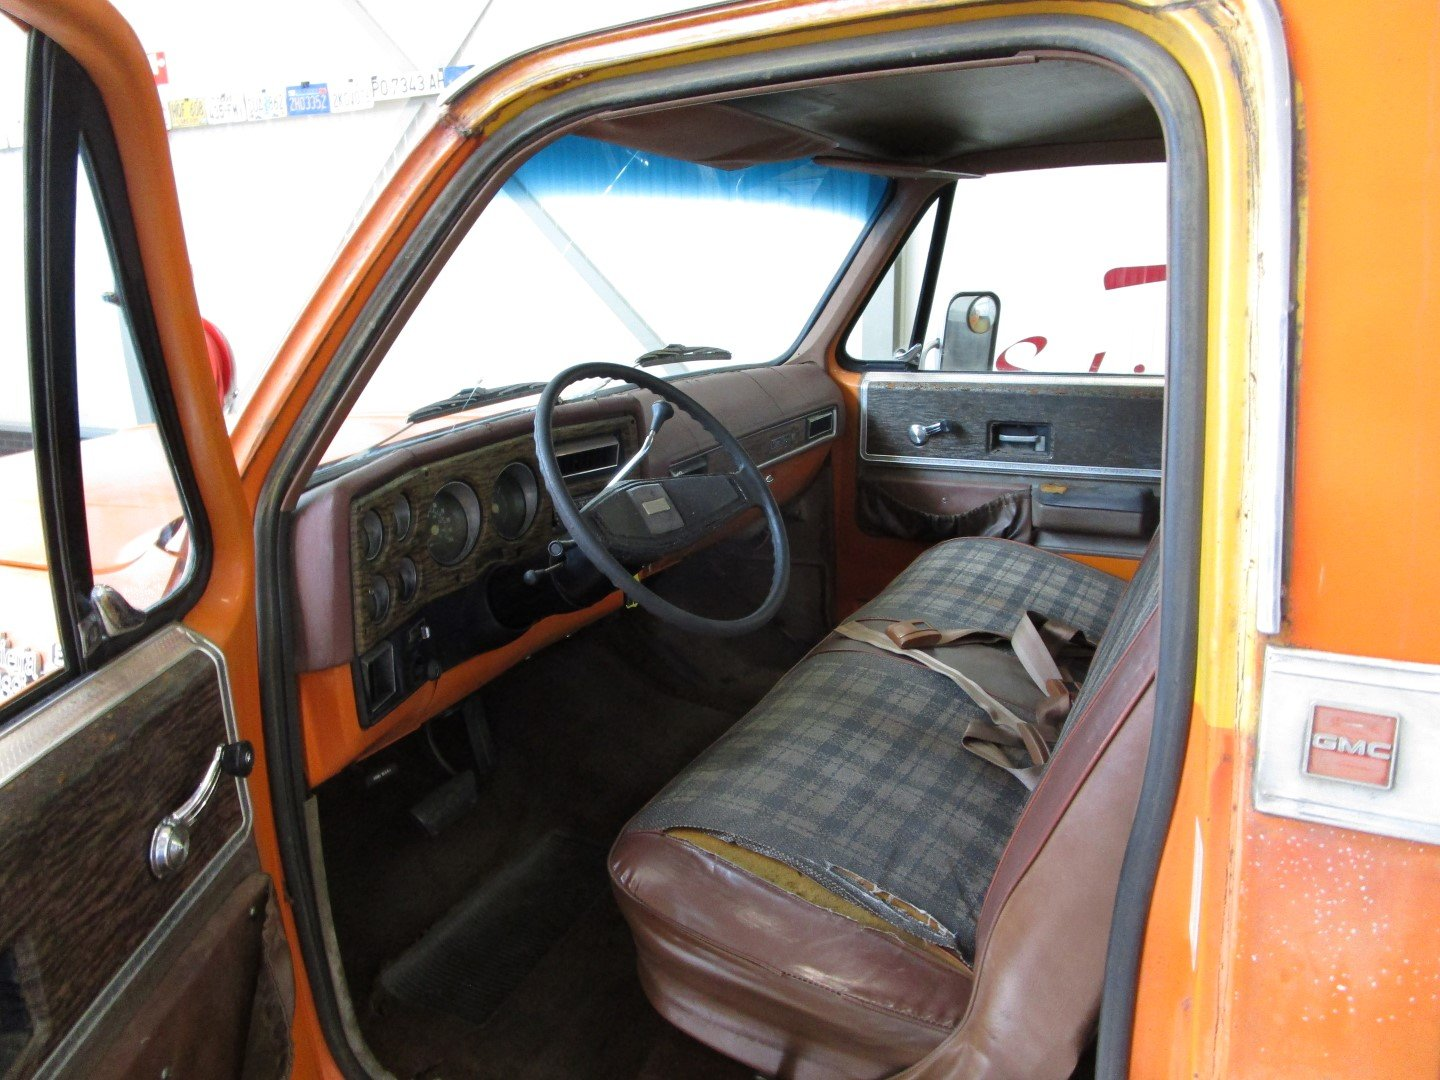 1976 GMC 15 Sierra Classic 350CU V8 Longbed Pick Up For Sale (picture 4 of 6)